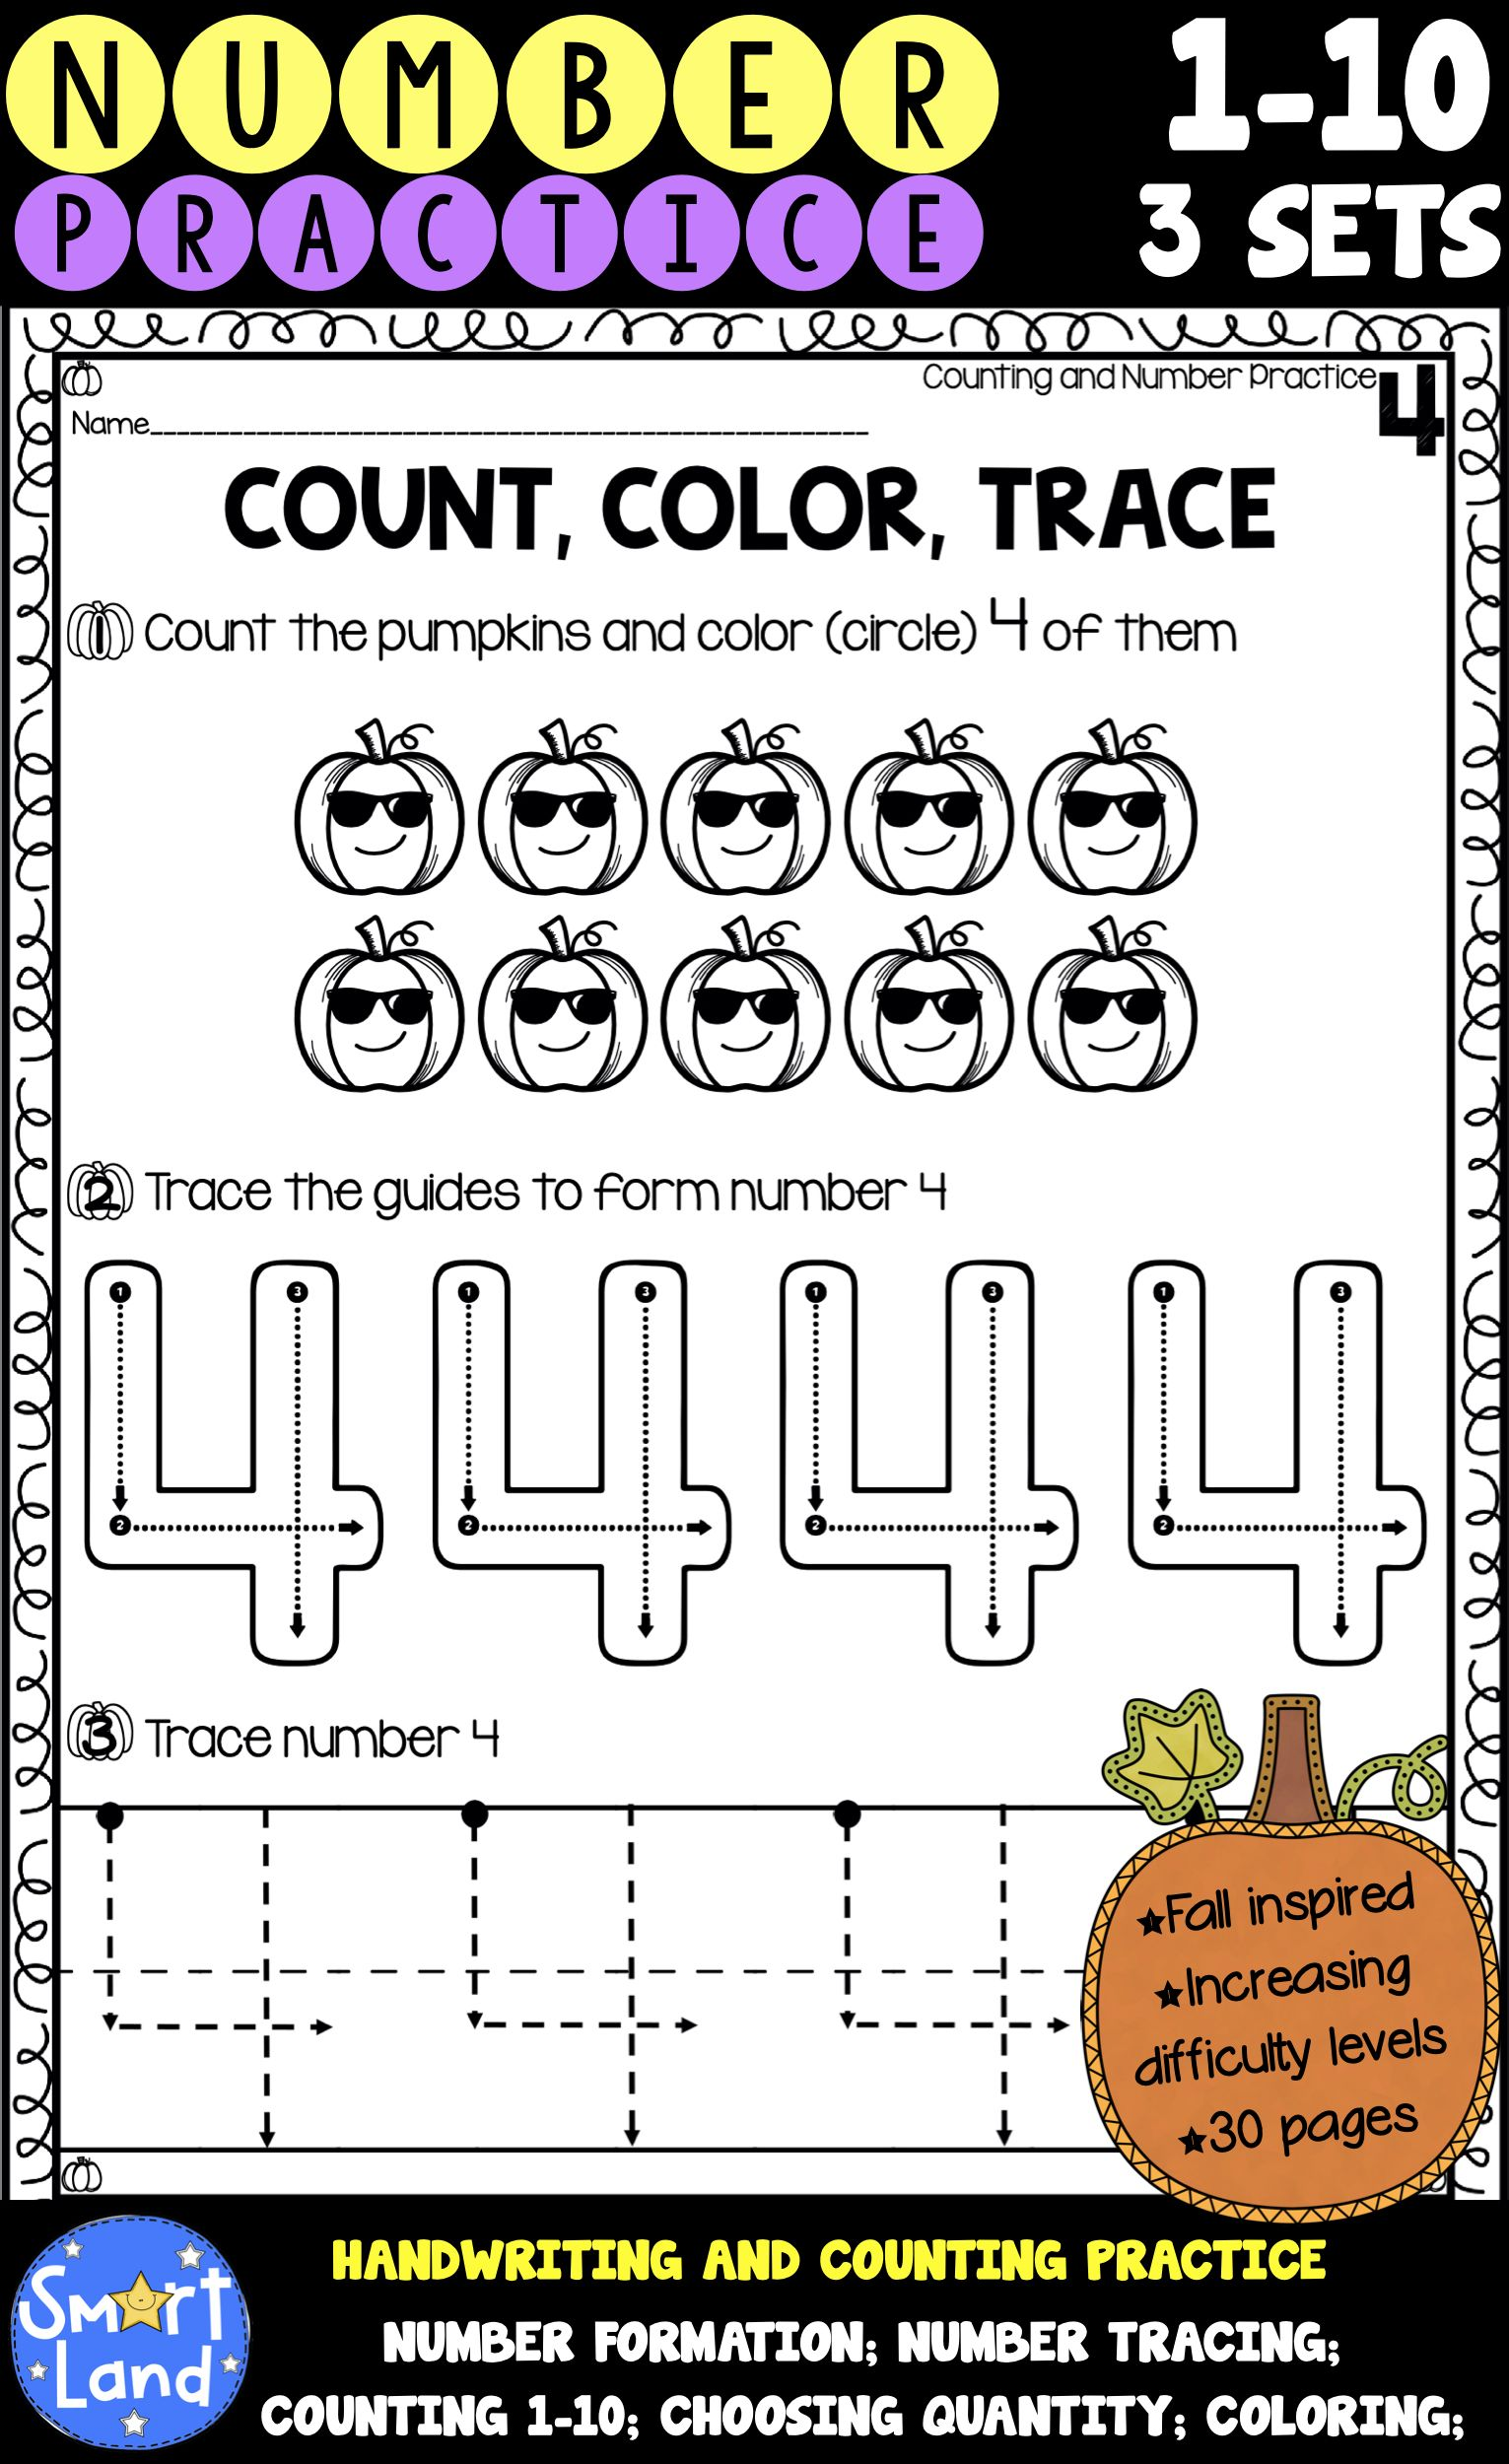 Number Handwriting And Counting Practice 3sets With